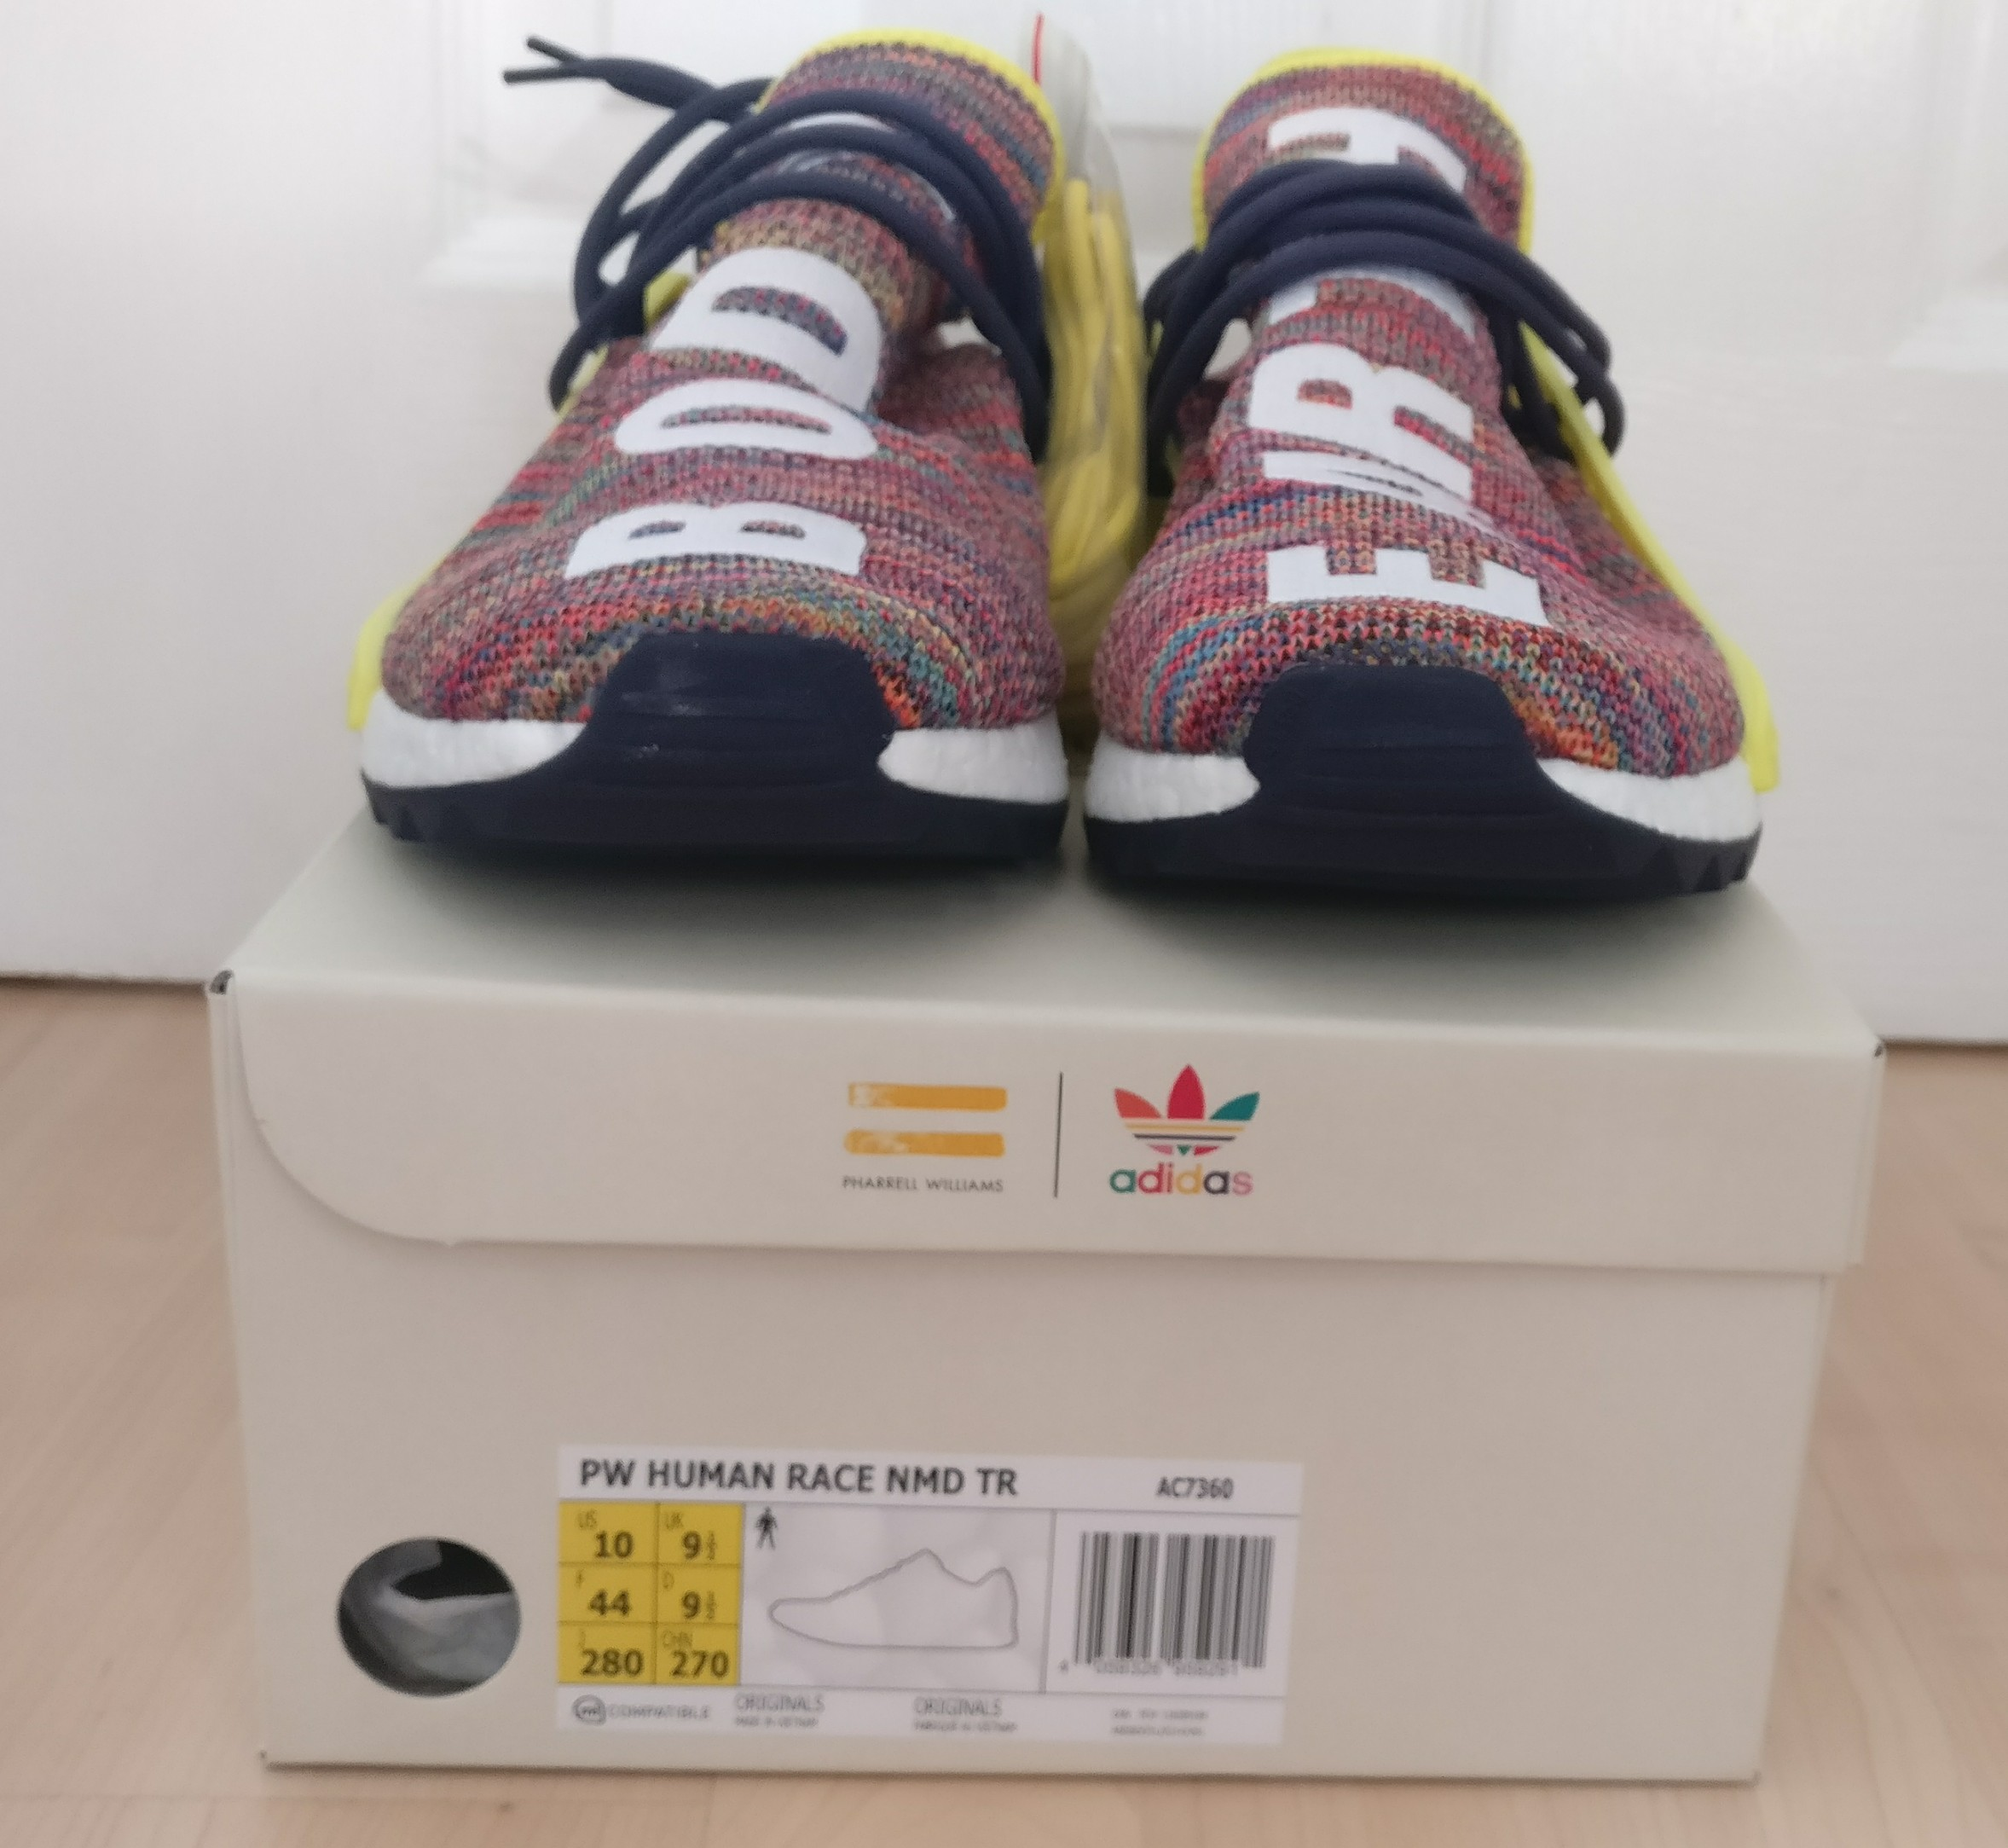 2043bda7fb2c6 Adidas Pharrell Williams x adidas NMD Hu Trail Multi UK 9 1 2 Size 10 - Low-Top  Sneakers for Sale - Grailed